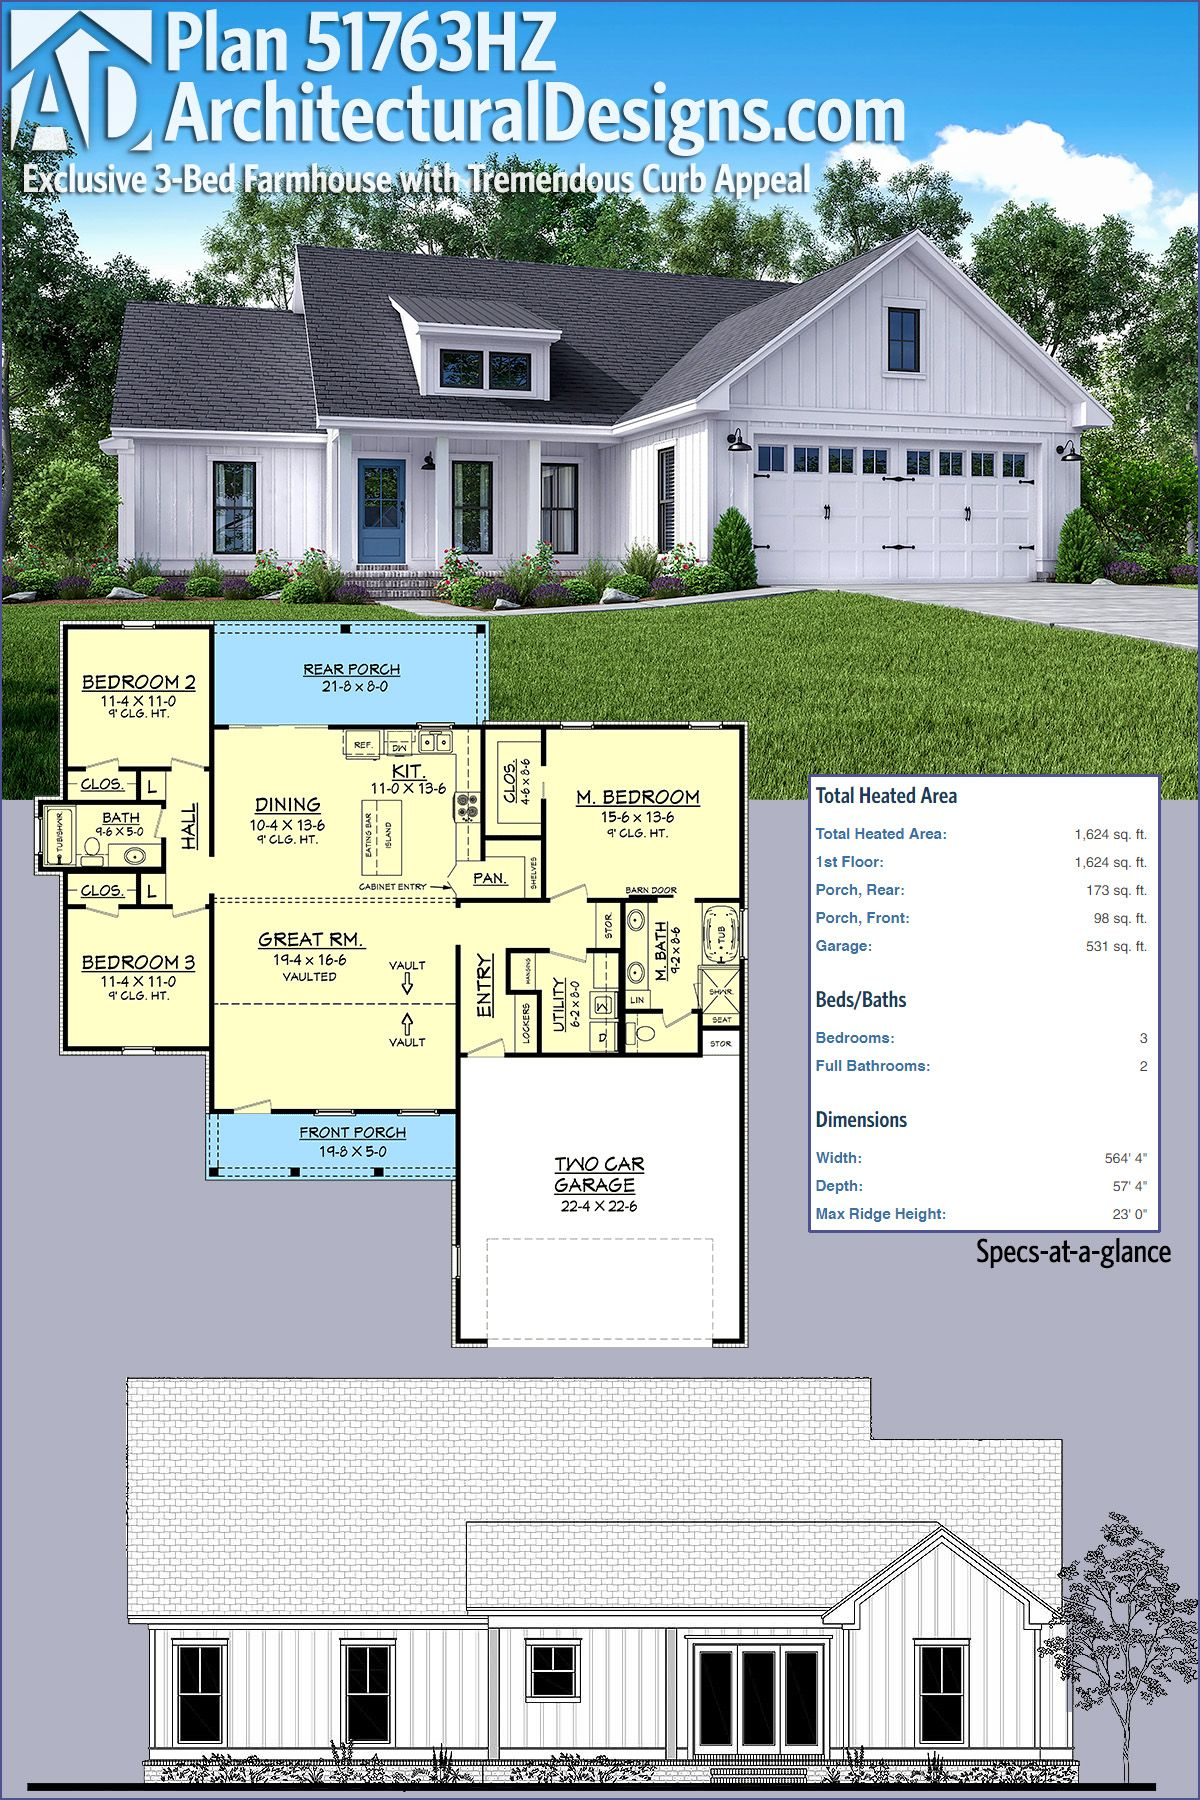 Introducing architectural designs exclusive modern farmhouse plan 51763hz it has porches front and back